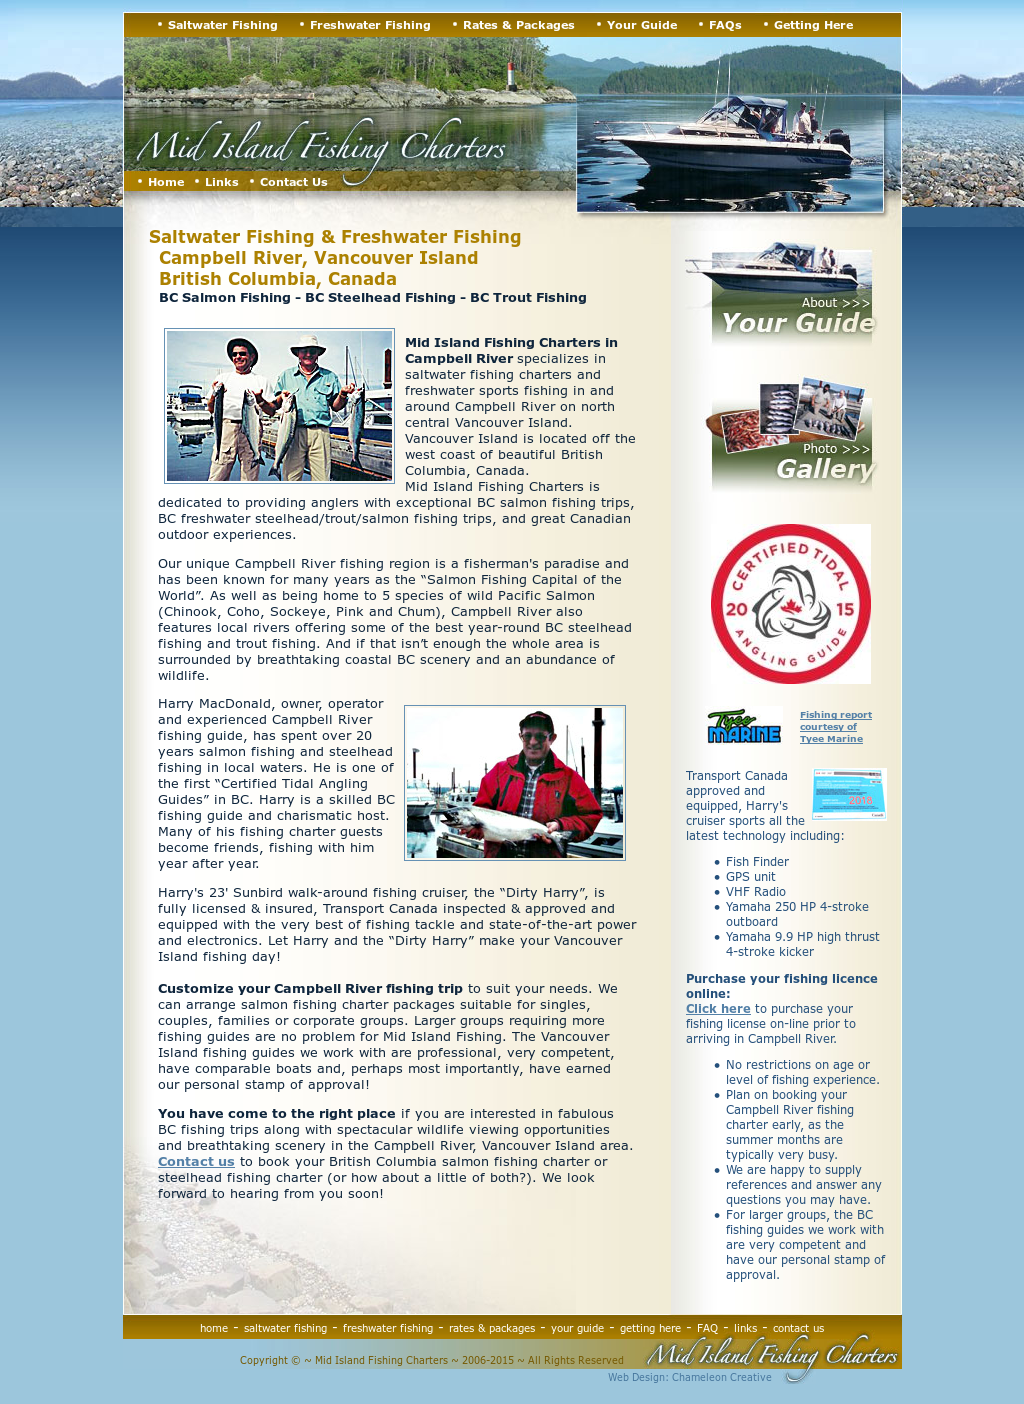 Mid Island Fishing Charters Competitors, Revenue and